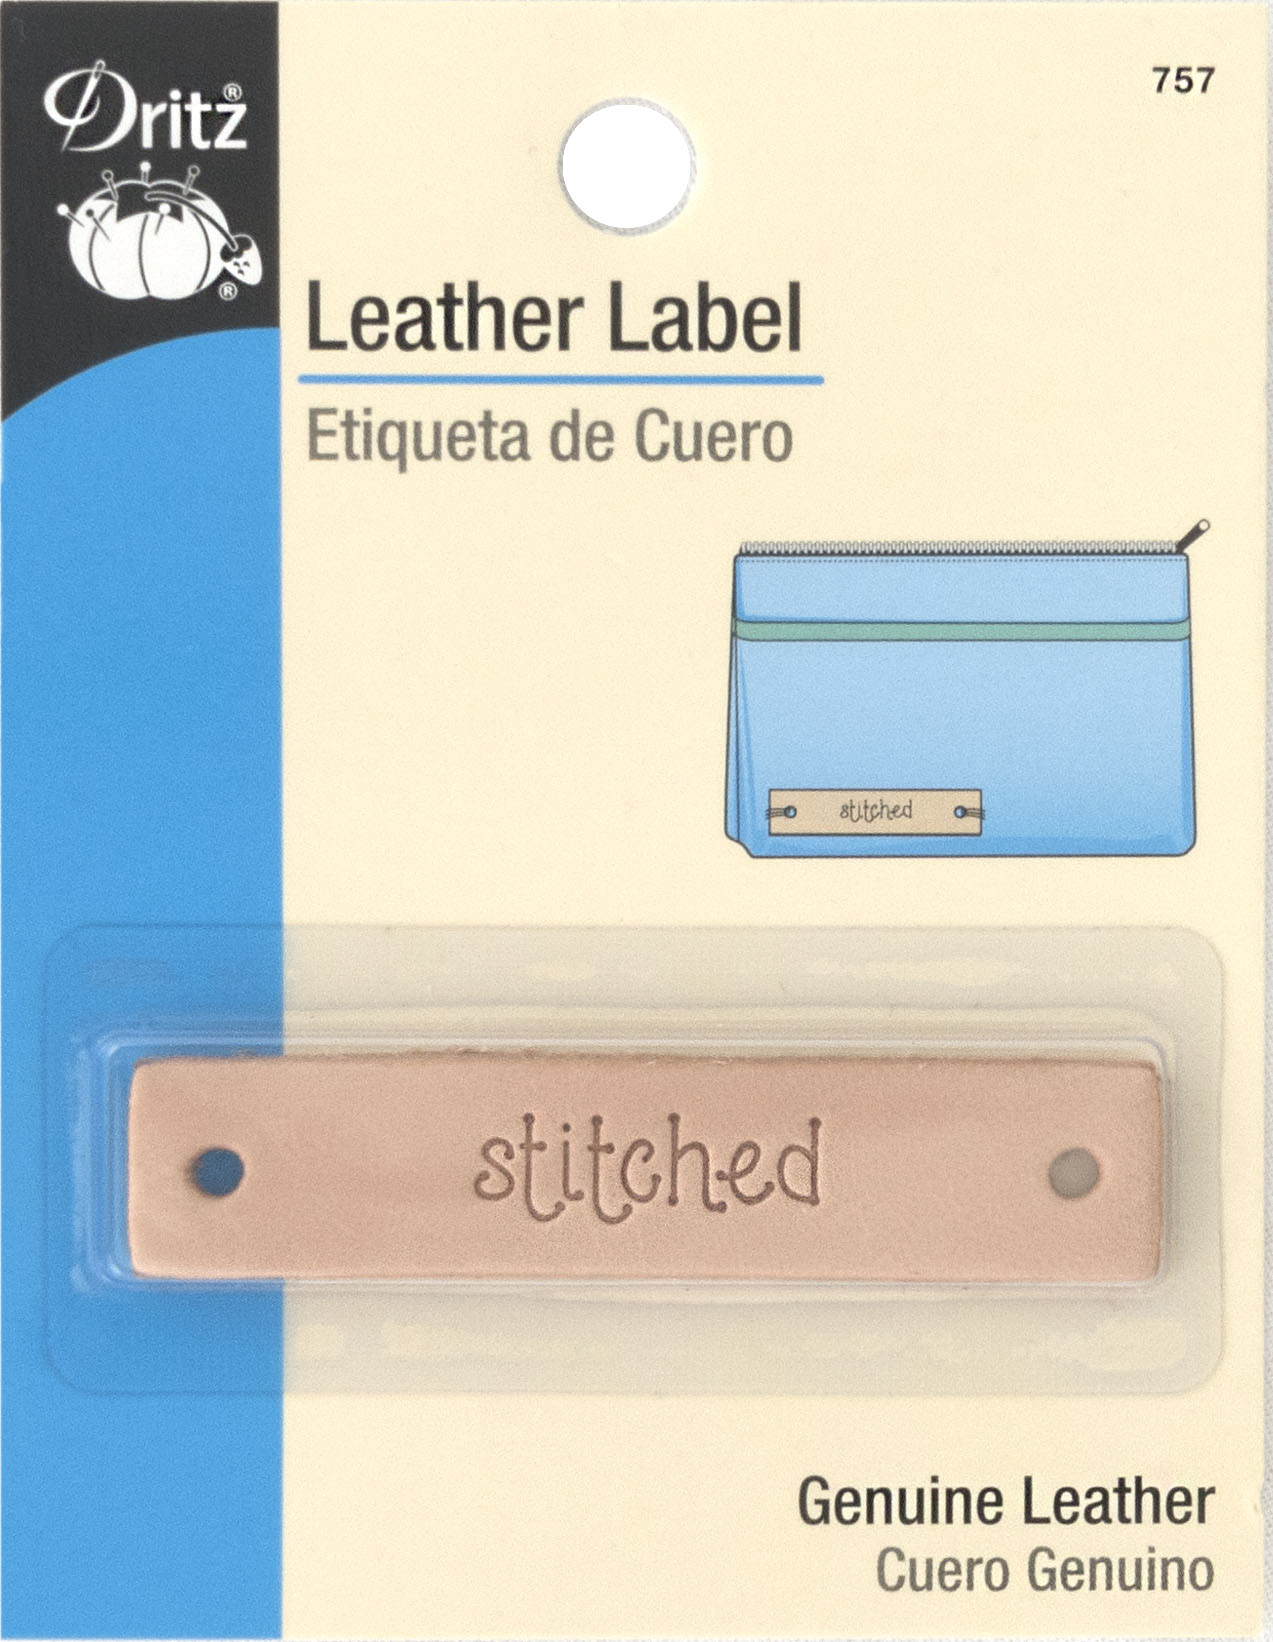 Dritz - Leather Labels Stitched